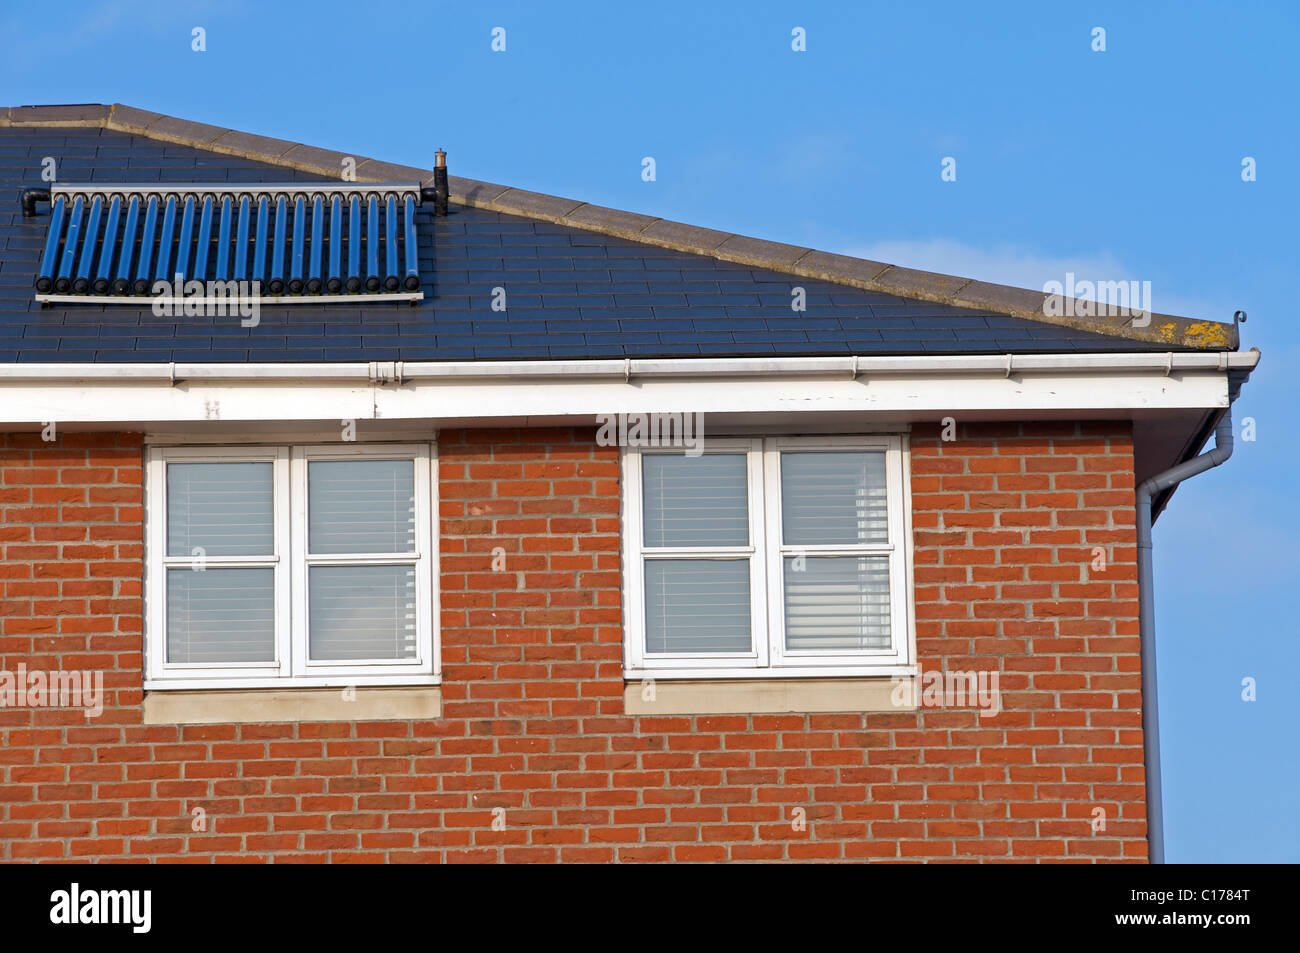 Evacuated solar energy tubes producing hot water for a residential property, Ipswich, UK. - Stock Image